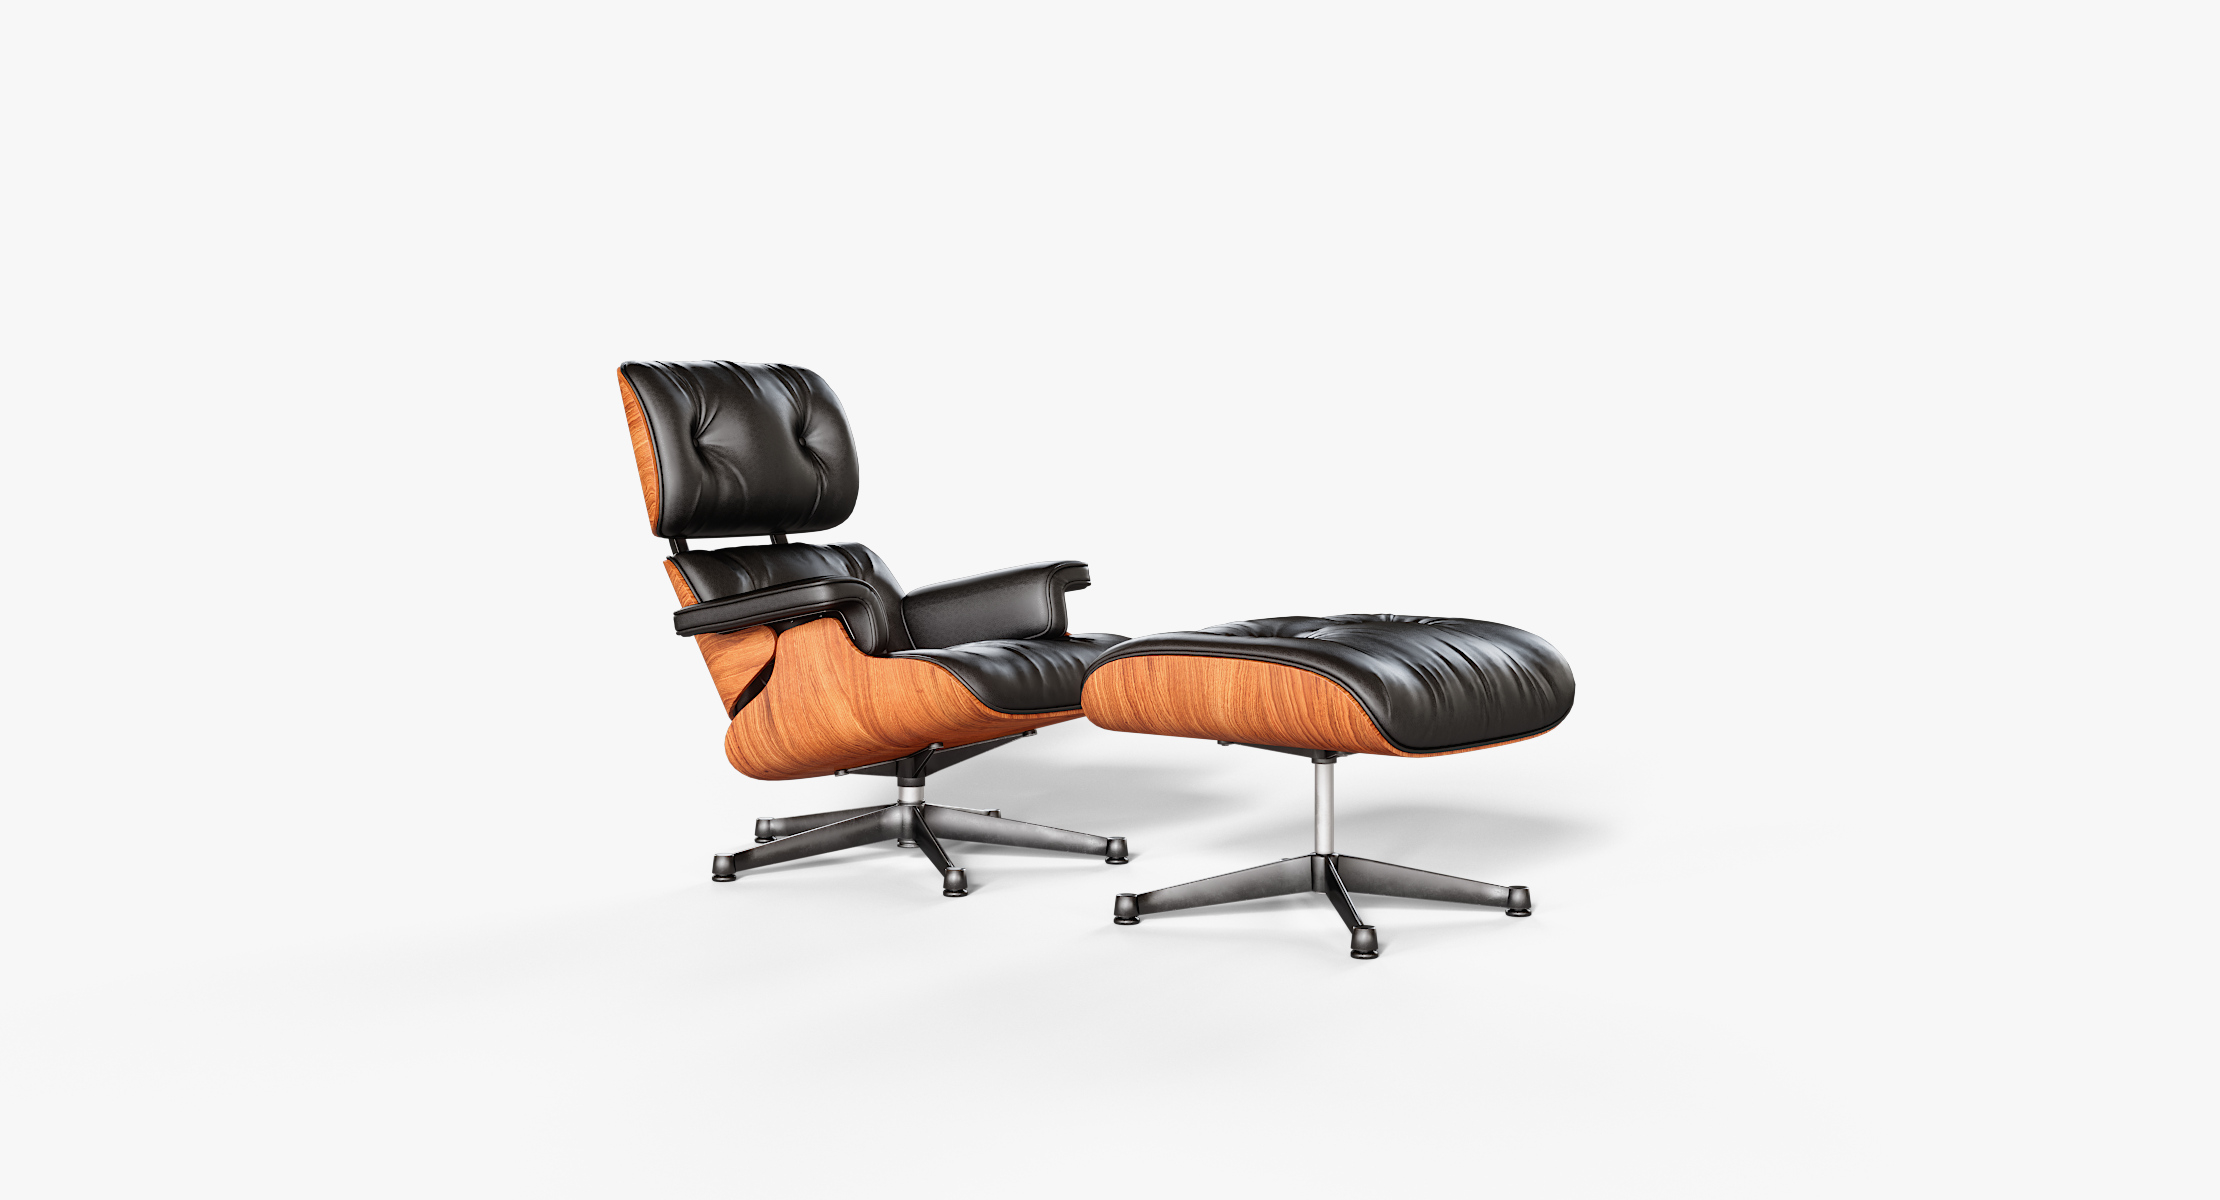 Outstanding Eames Vitra Lounge Chair 1956 Inzonedesignstudio Interior Chair Design Inzonedesignstudiocom